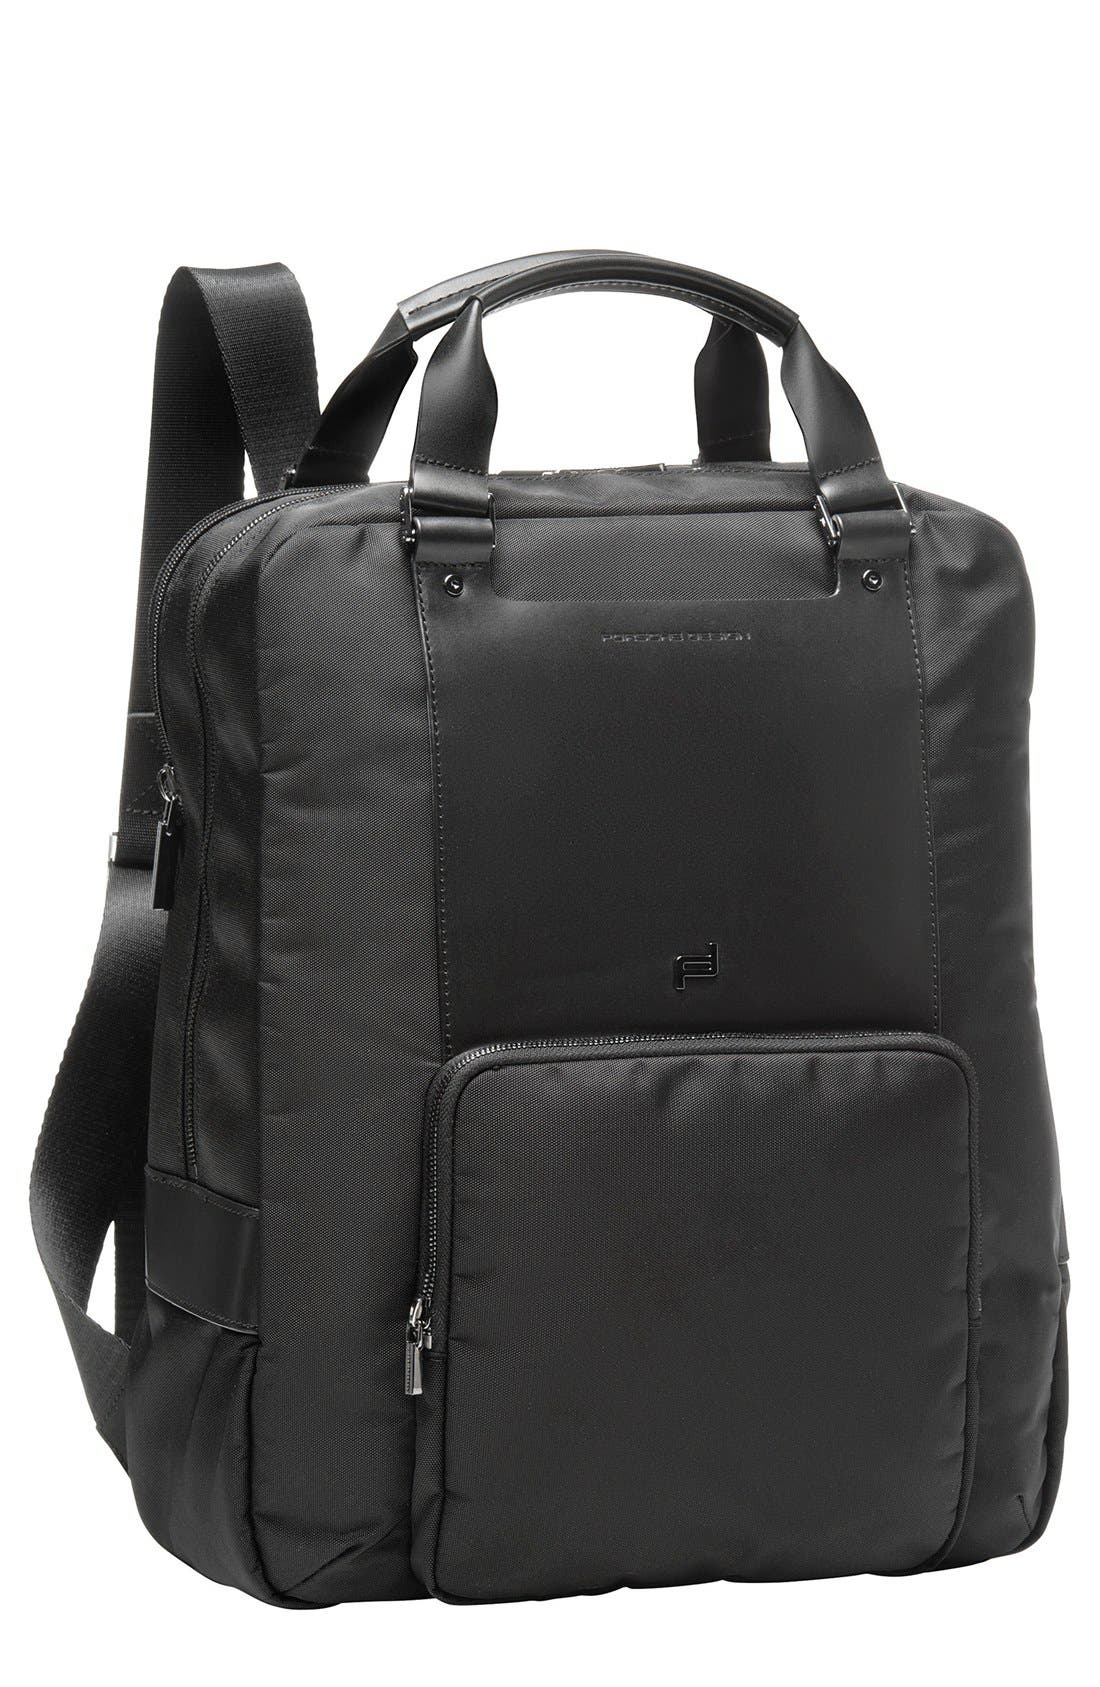 PORSCHE DESIGN 'Shyrt' Backpack